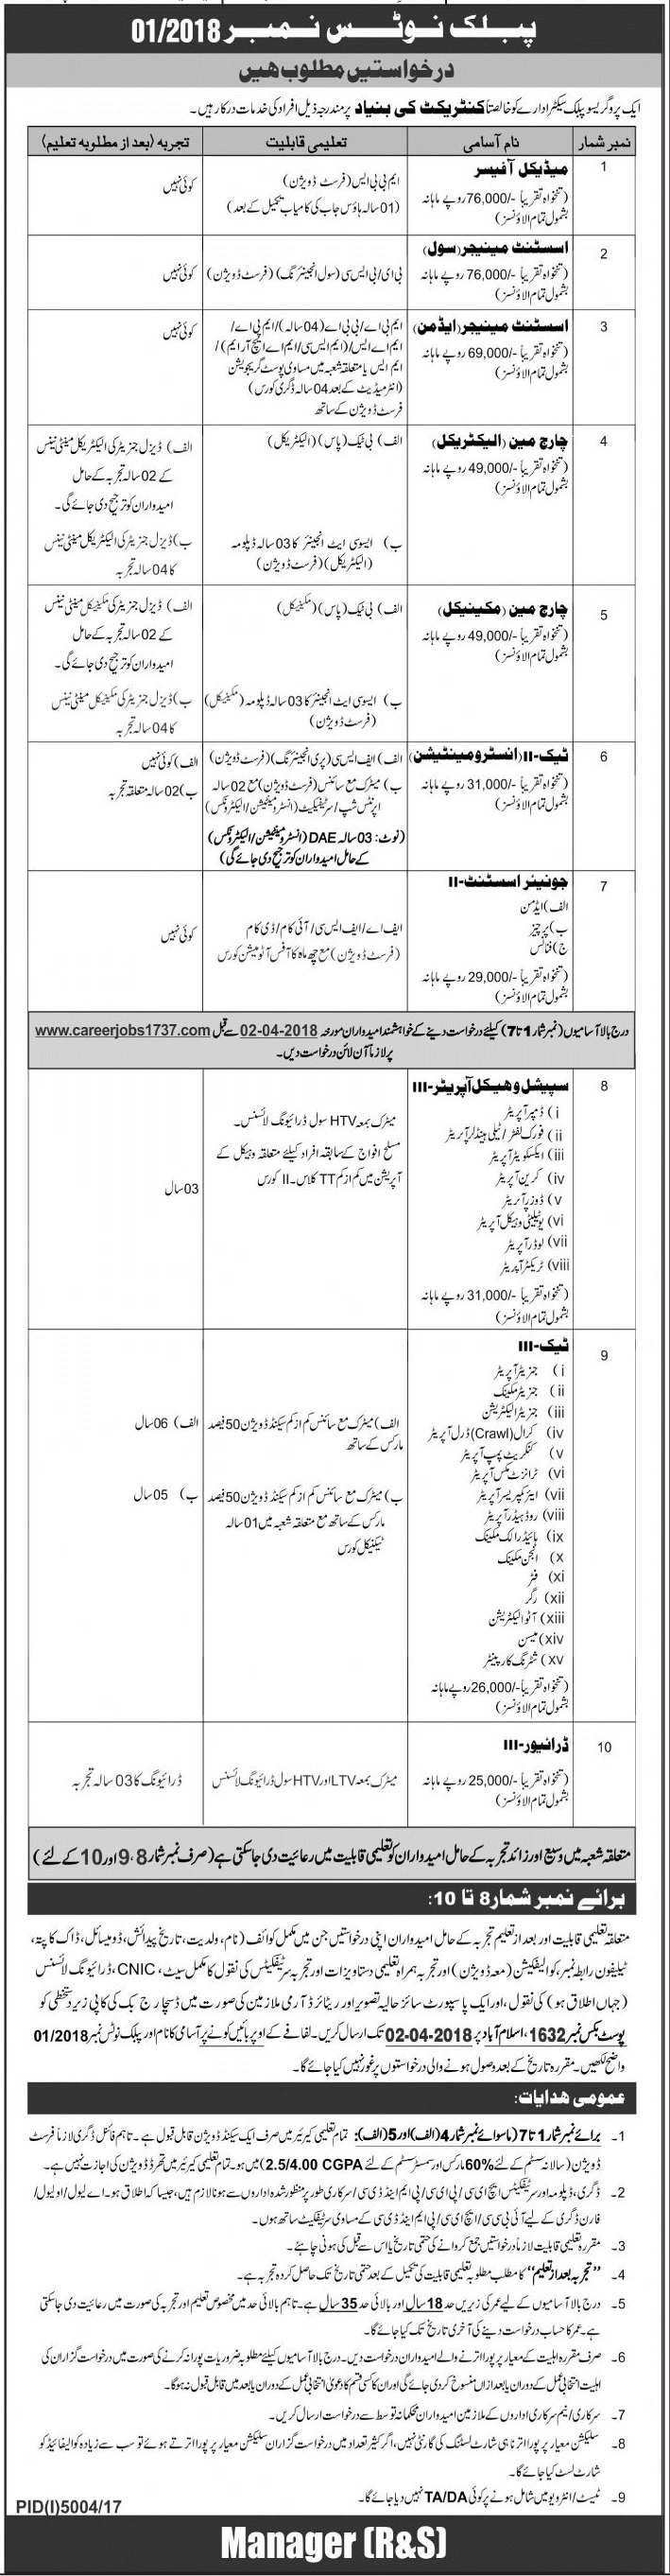 Public Sector Organization New Jobs Daily Jang Newspaper 18 March 2018